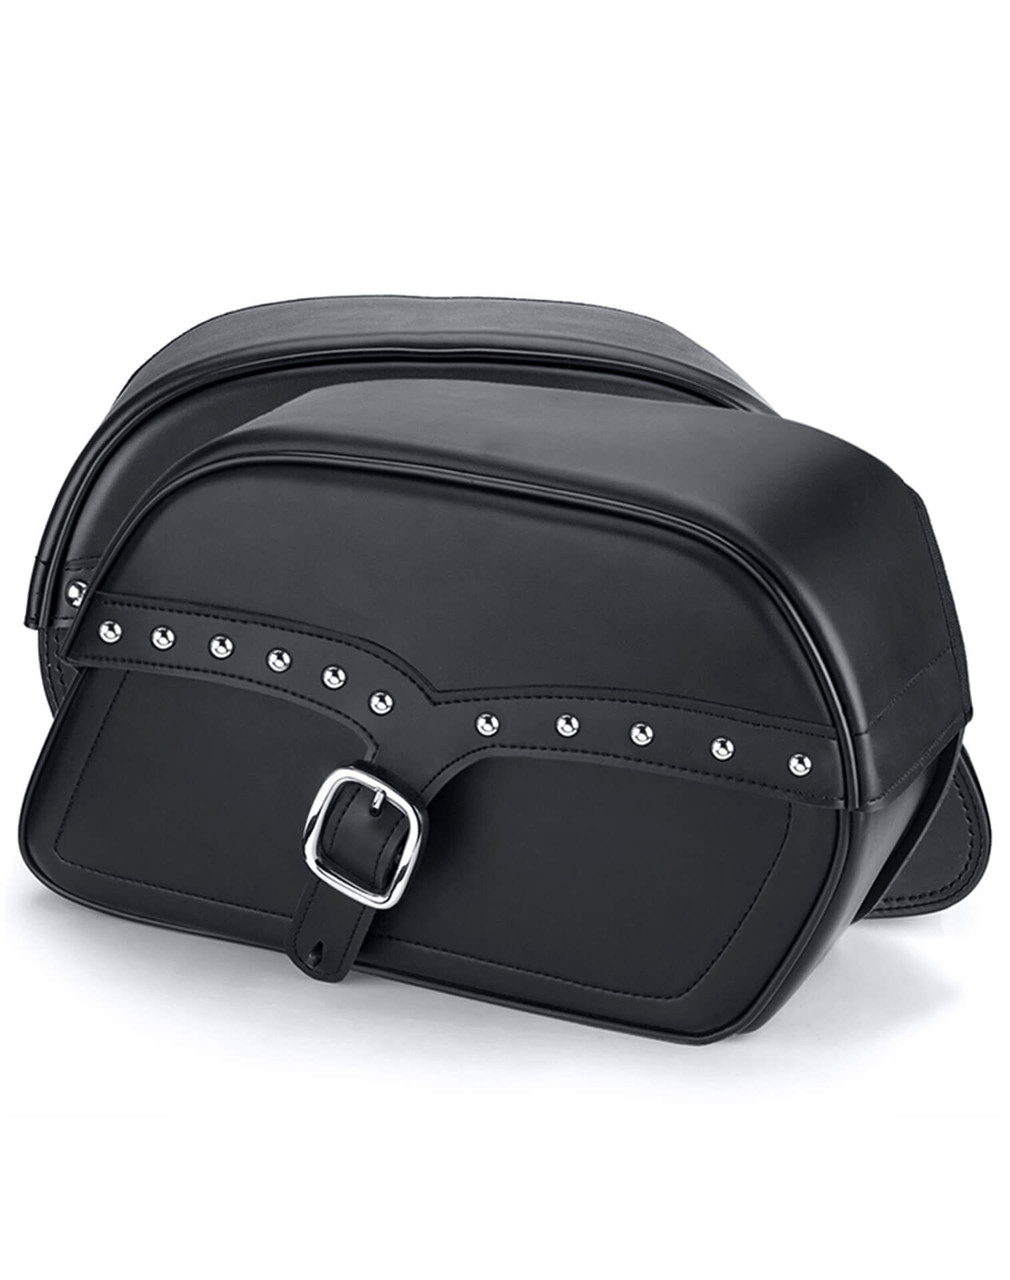 Victory Judge SS Medium Motorcycle Slanted Studded Saddlebags Both Bags View